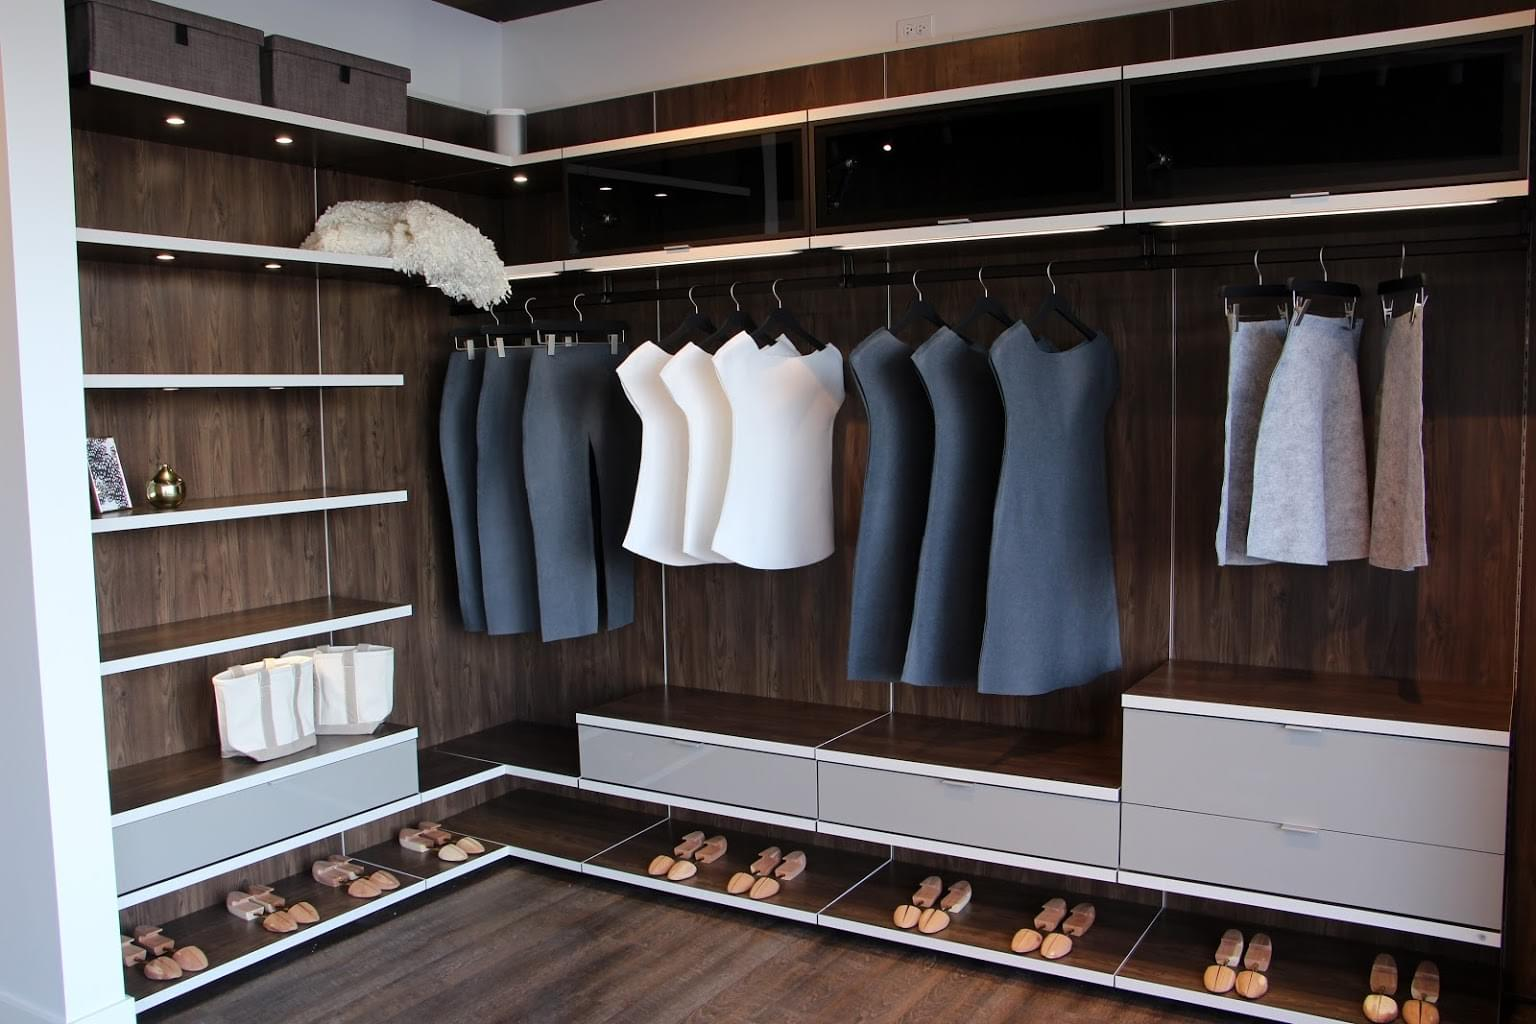 California Closets Interior Designer In Deerfield, IL .